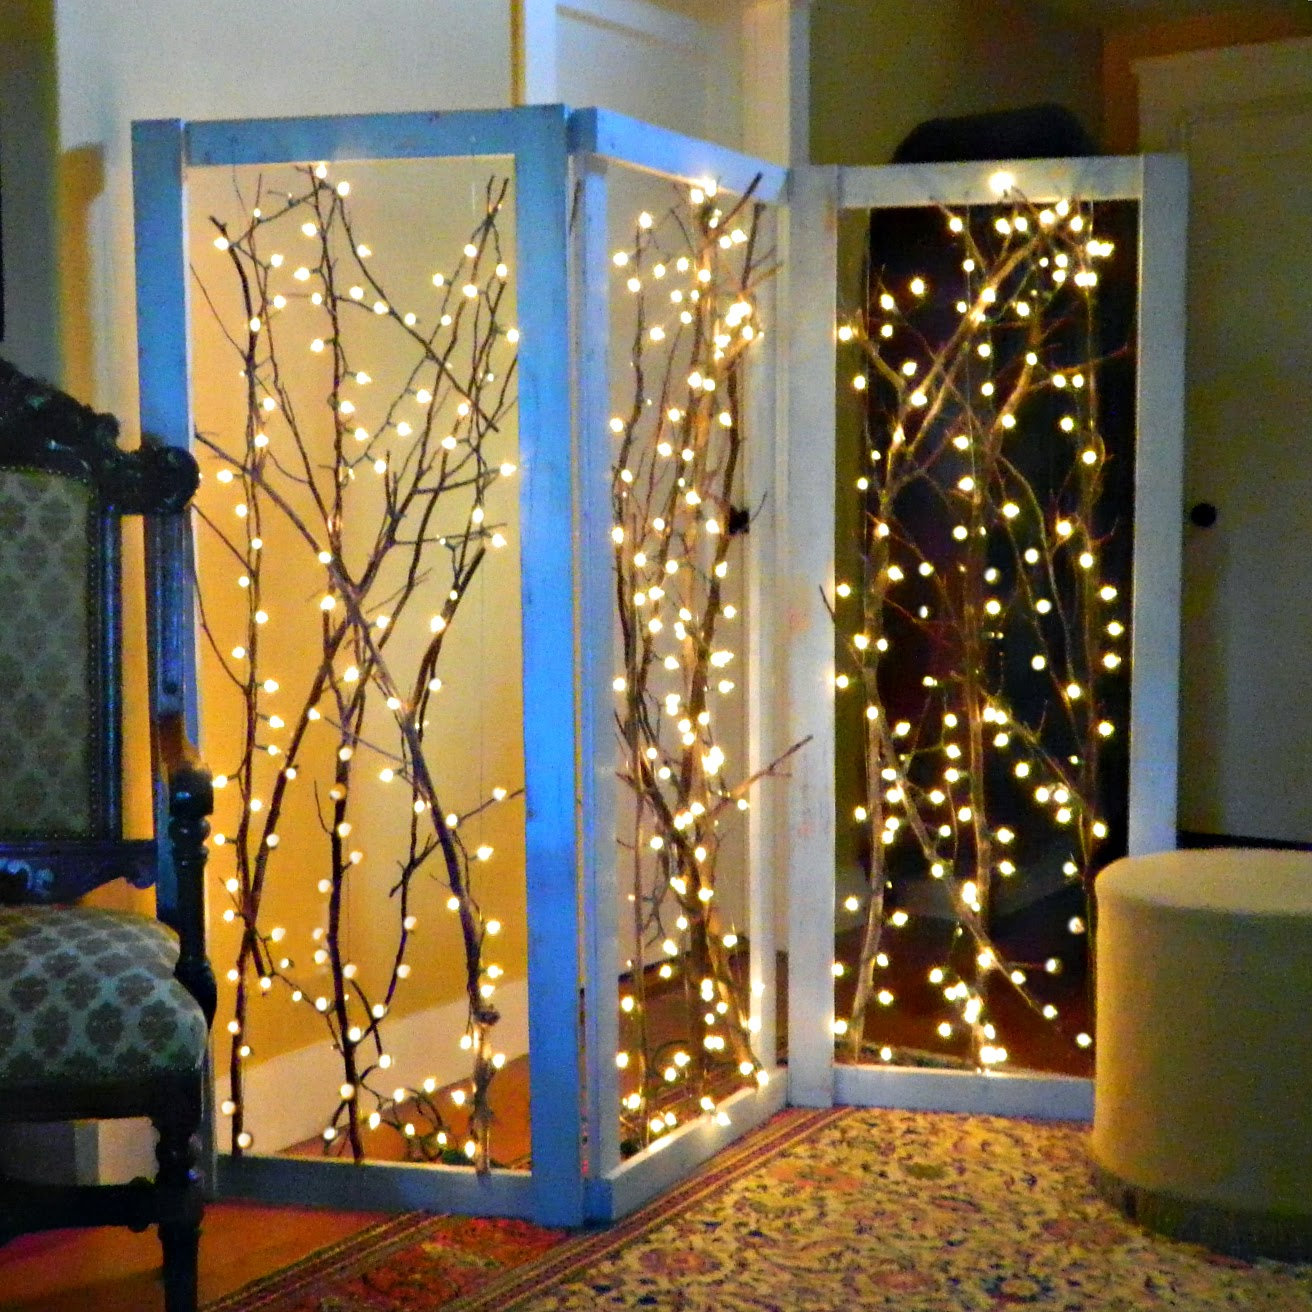 Mark montano twinkling branches room divider diy Room divider wall ideas